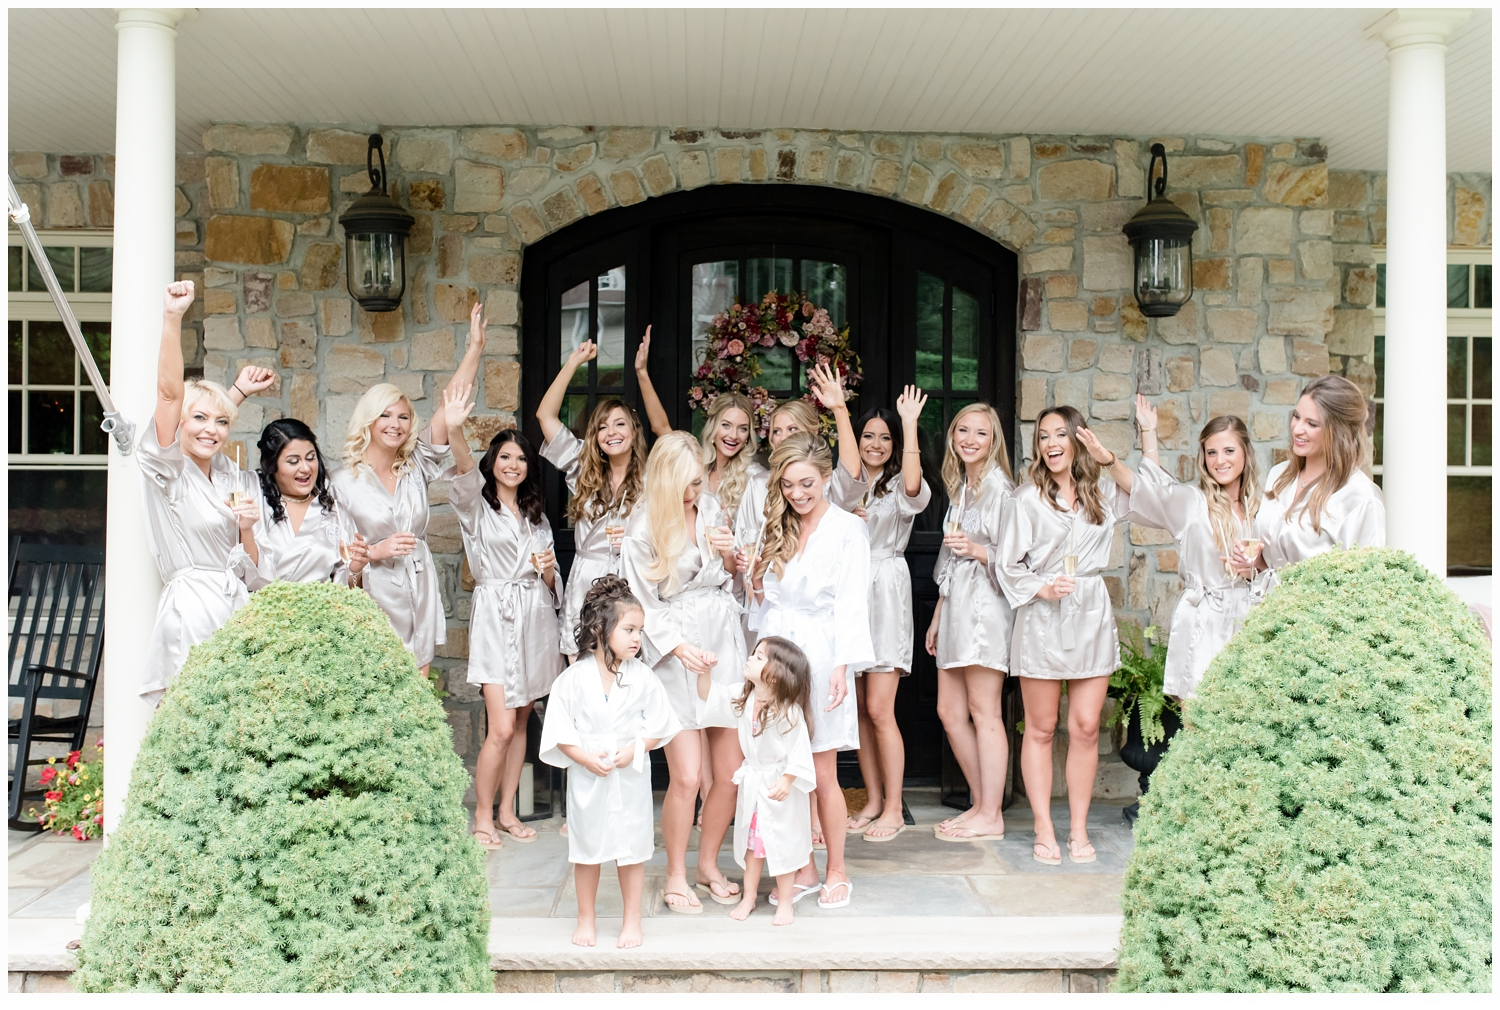 bride and bridesmaids cheering on front porch